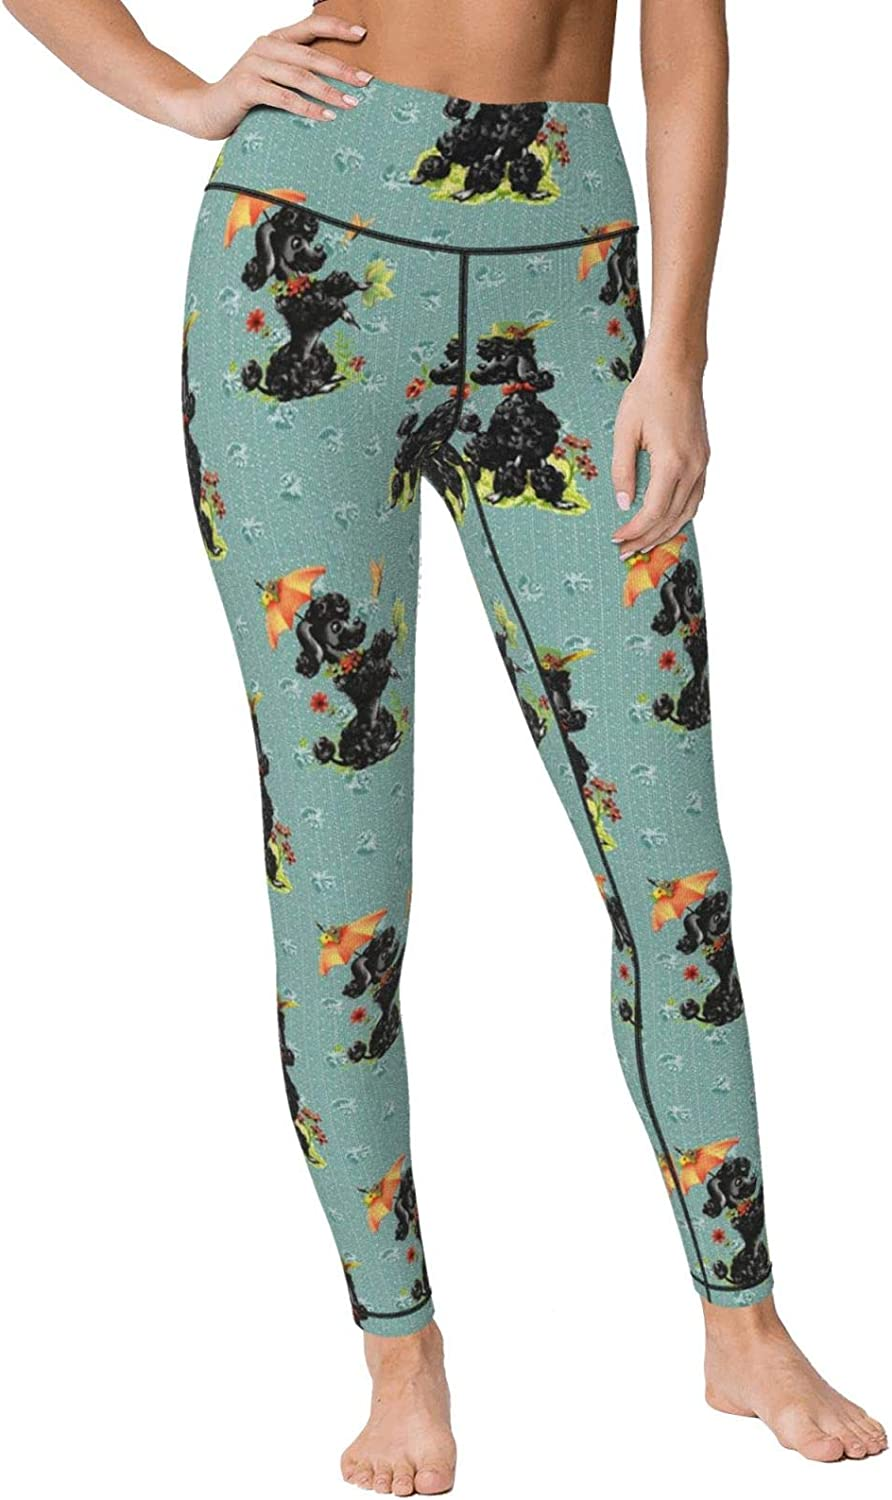 Yt92Pl@00 Max 75% OFF Womens Prissy Poodles Green Yoga It is very popular Waist Casual Leg High